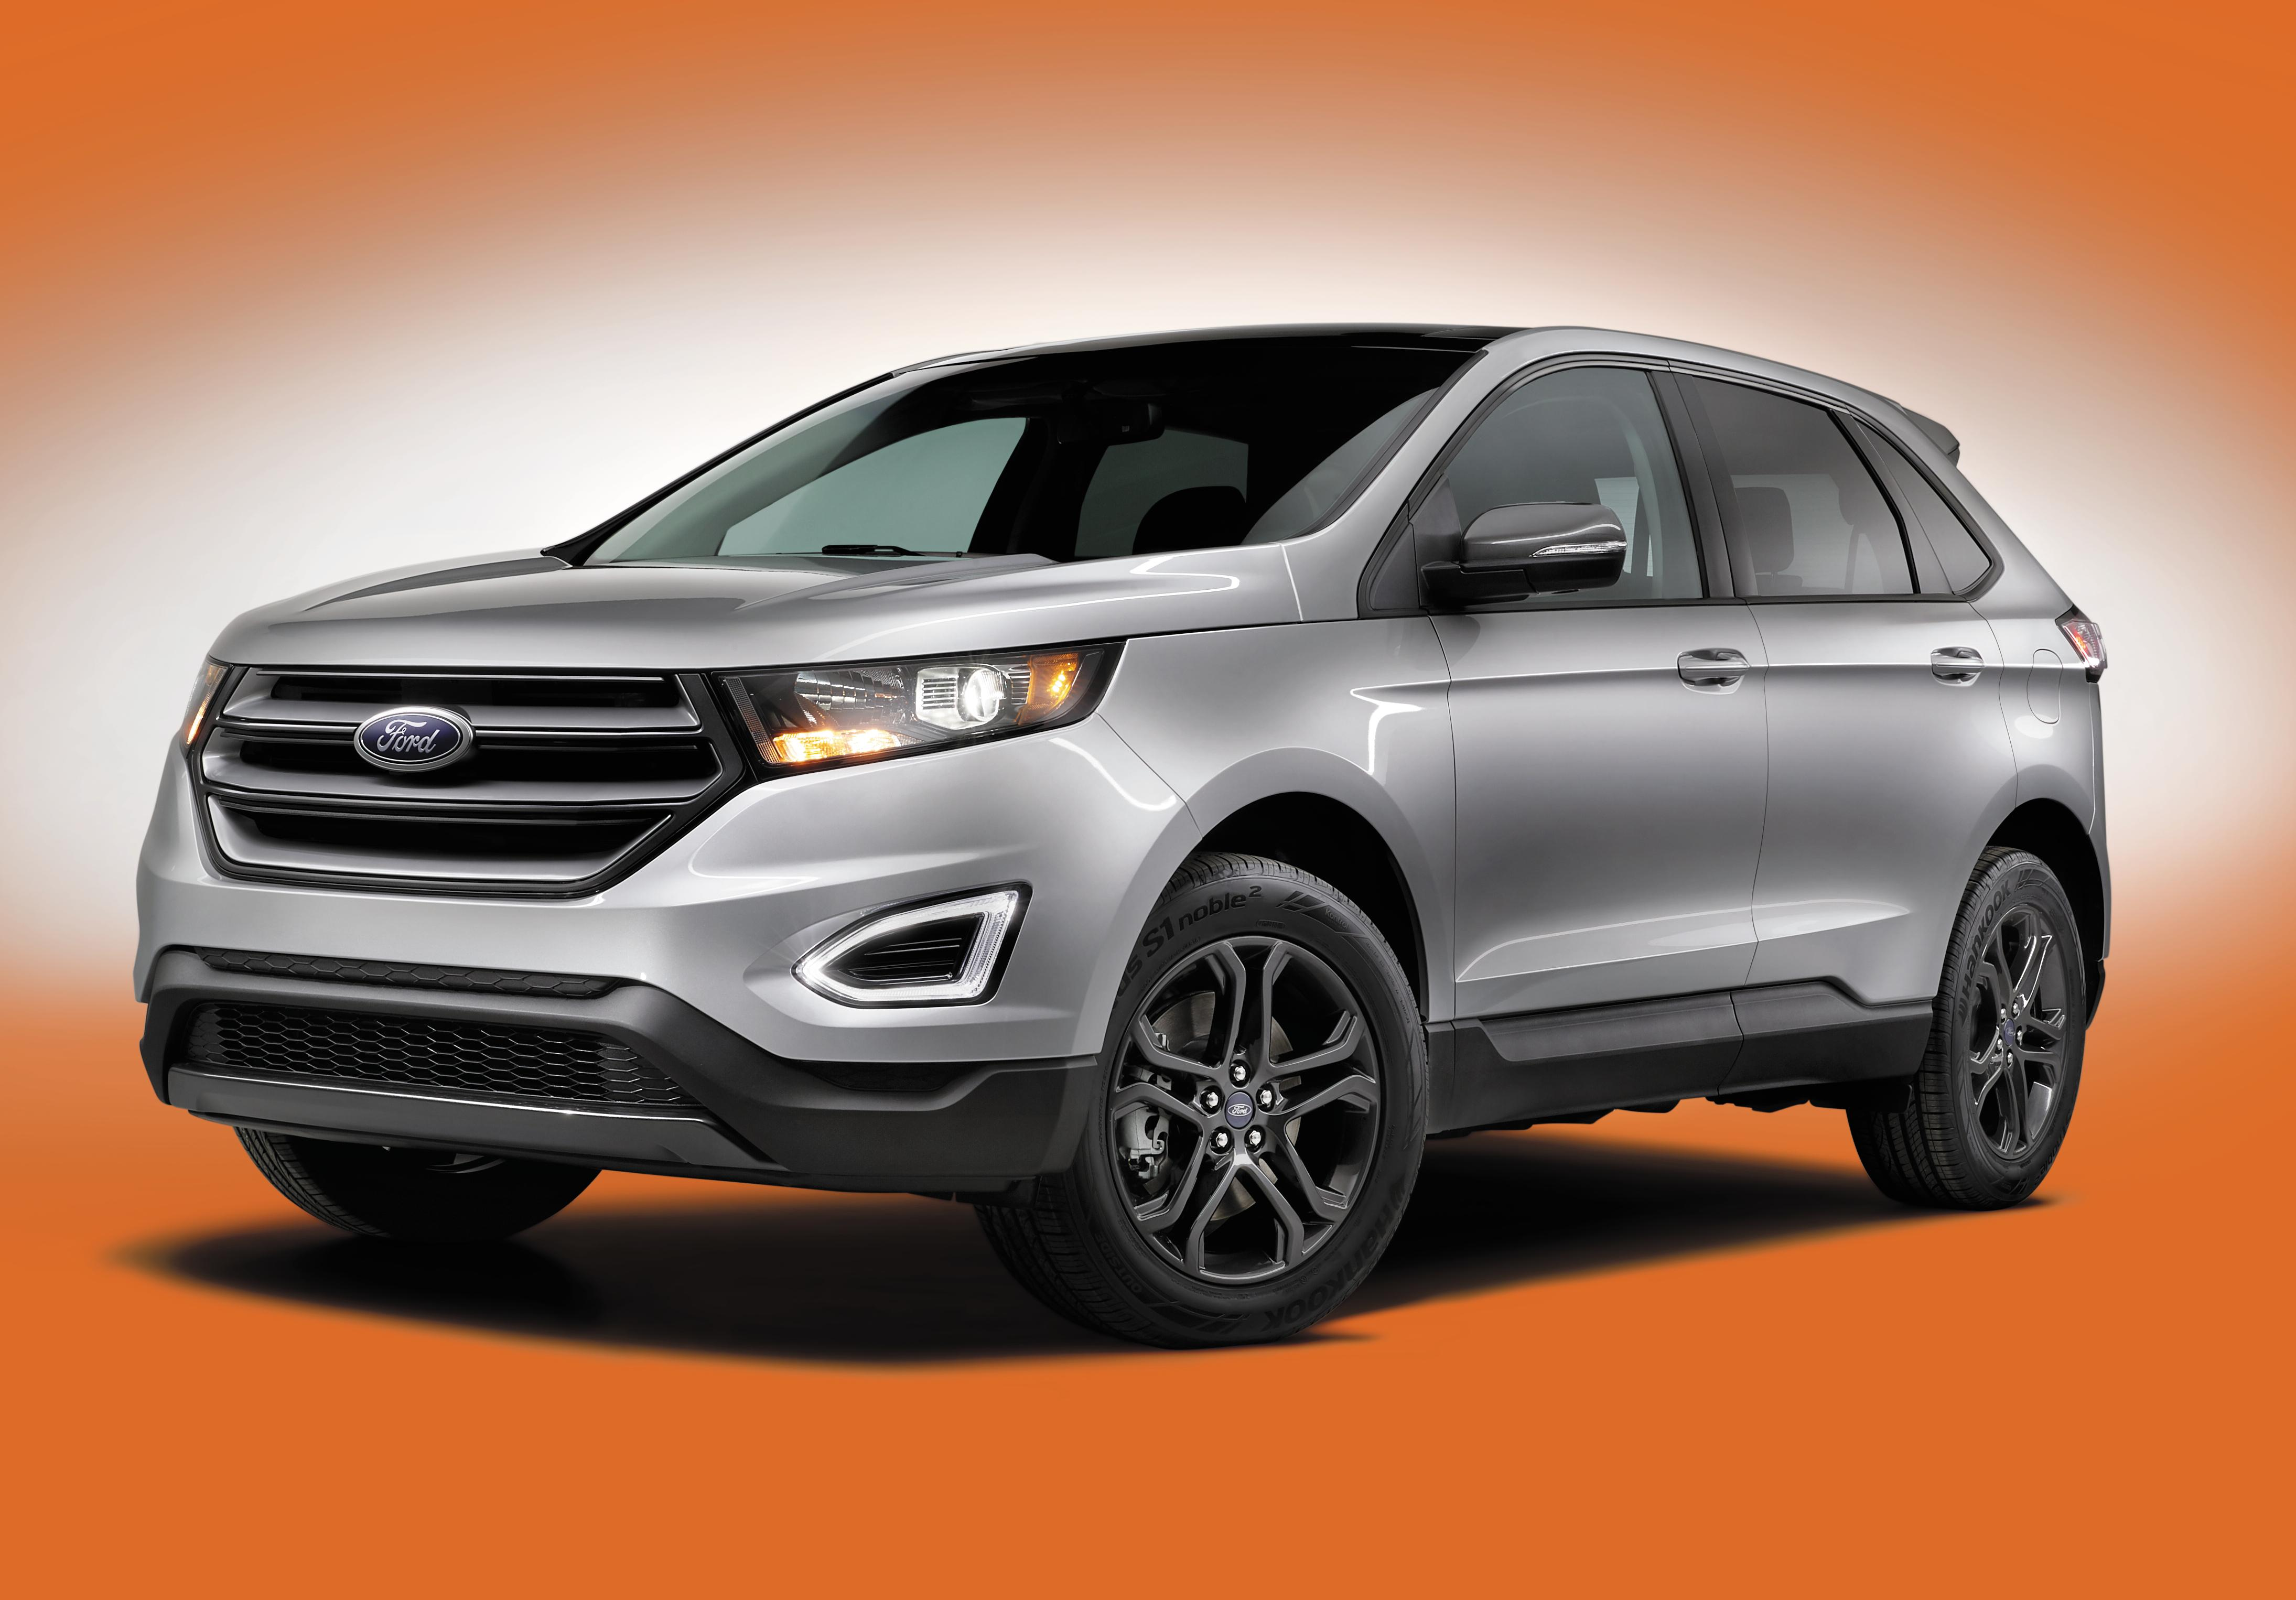 sport coastal ford edge lease vehicle clearance dealer vancouver offers new edited